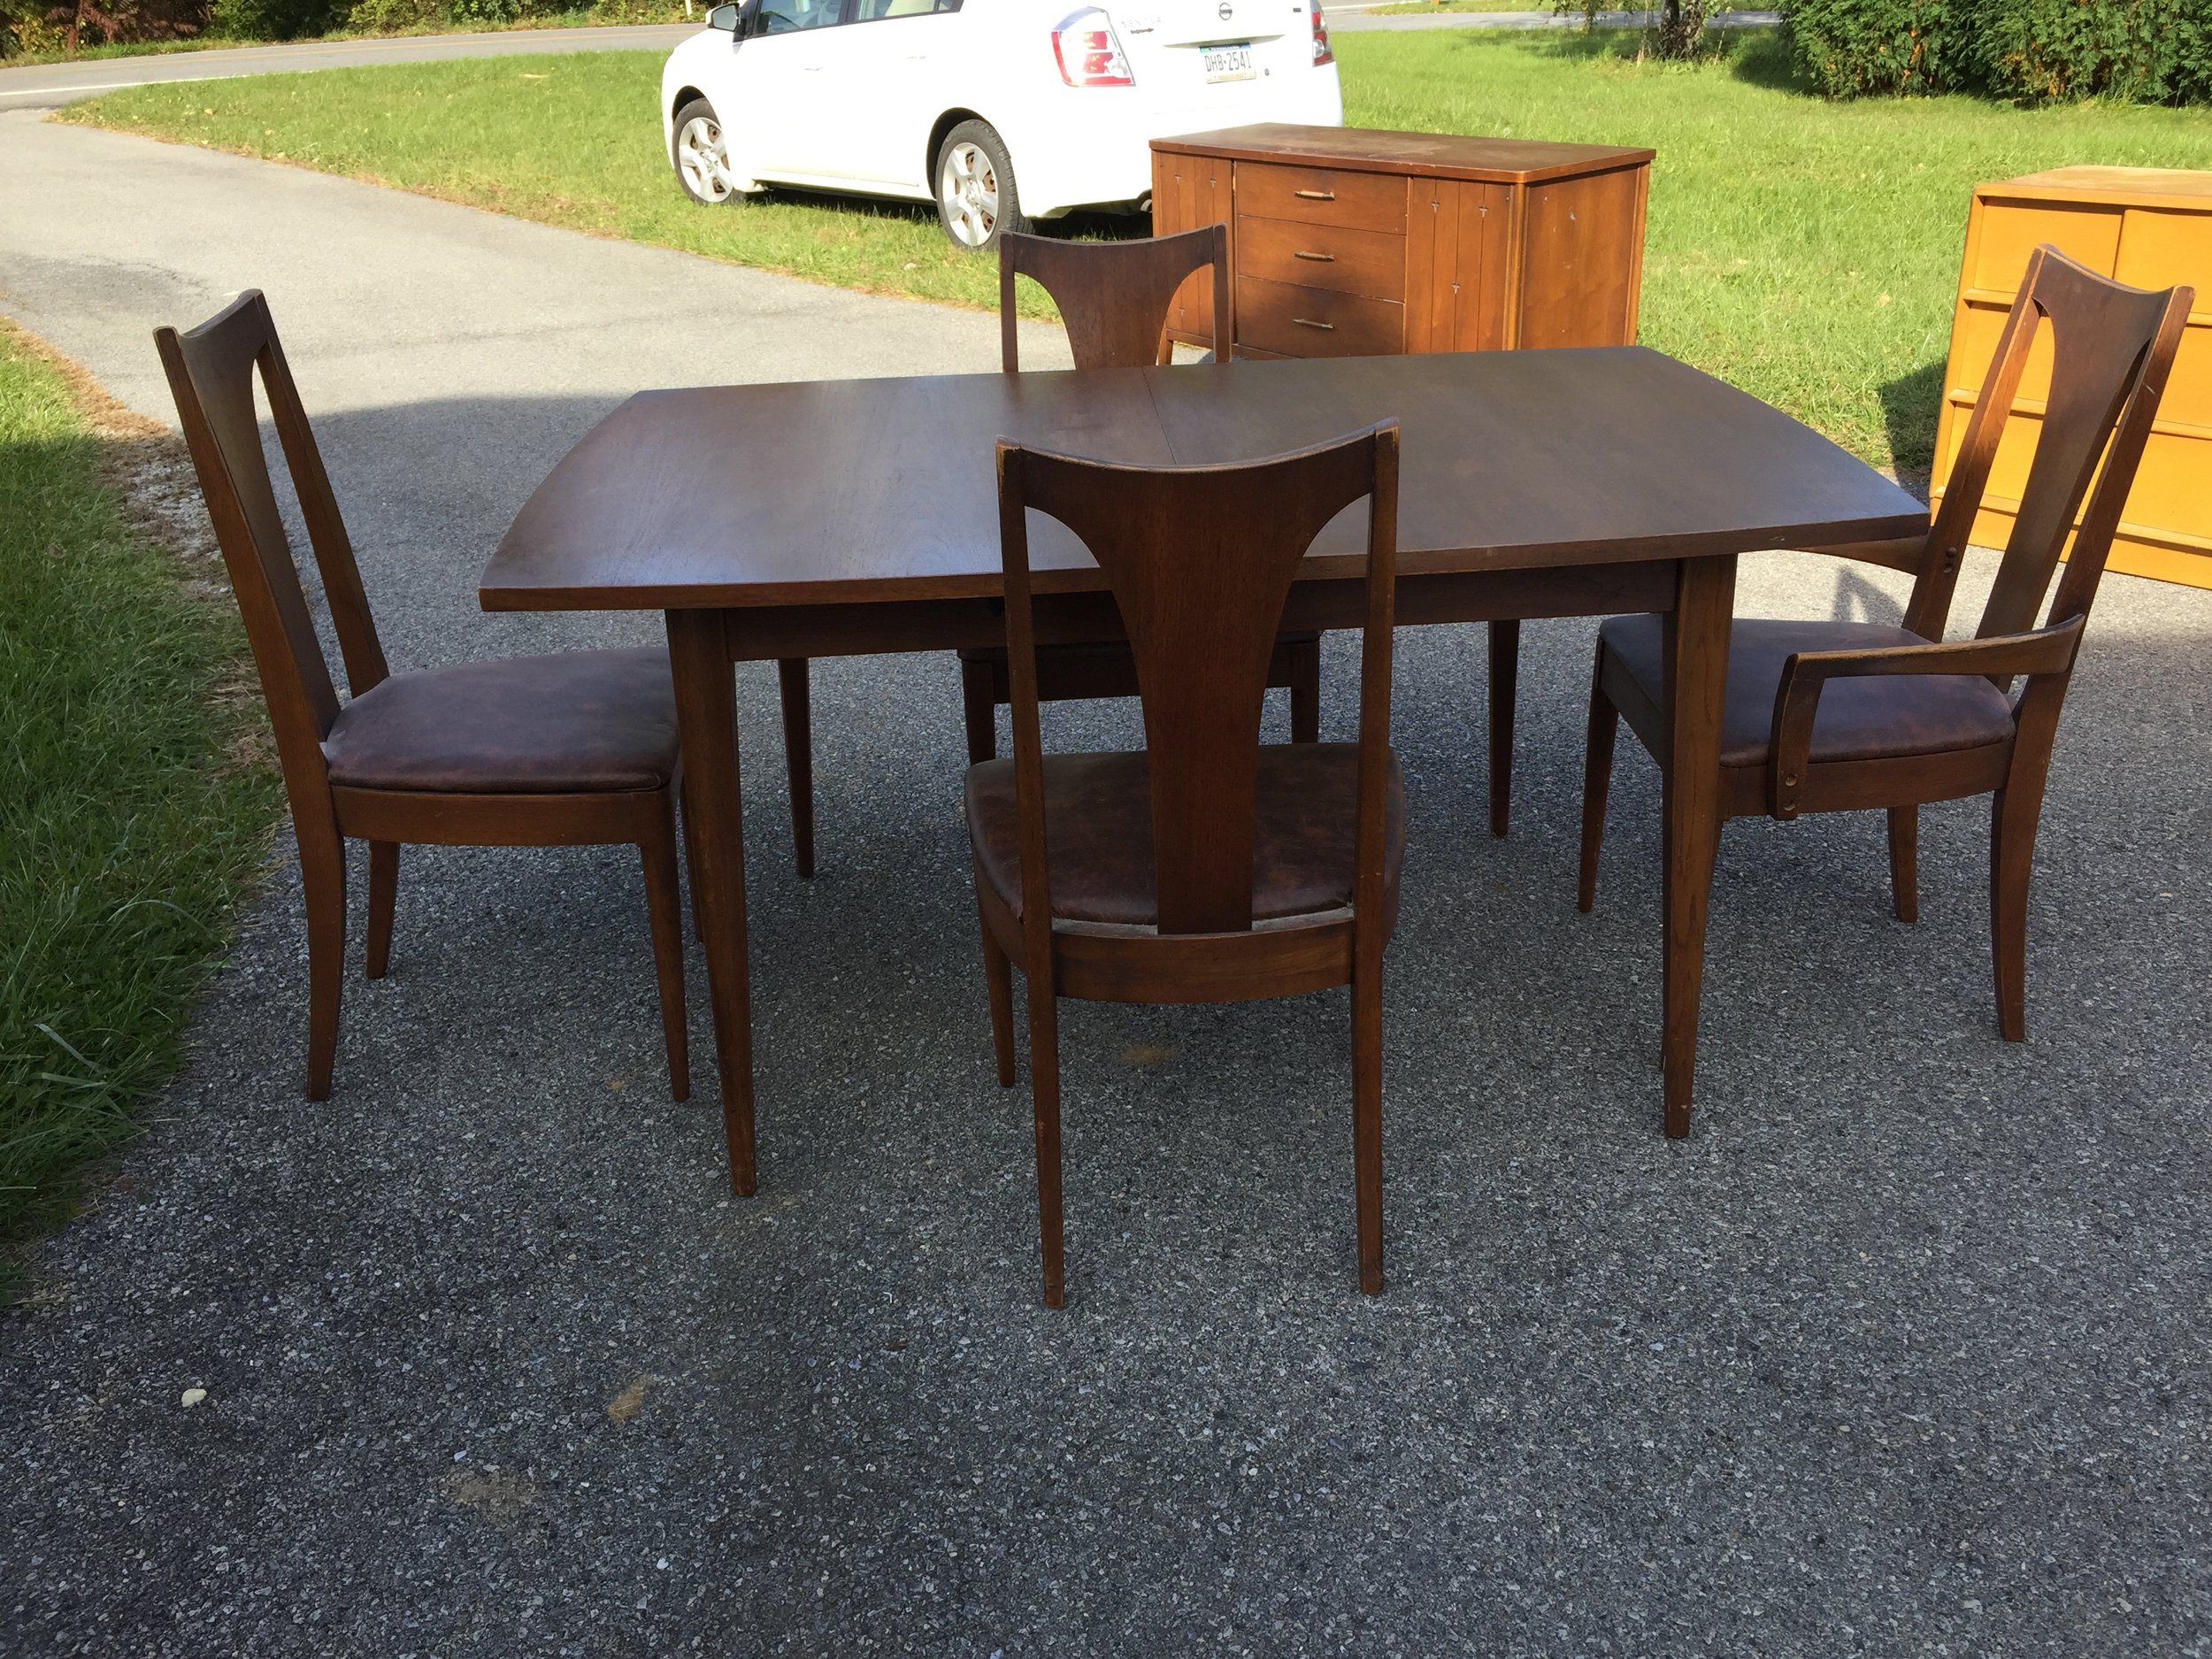 Broyhill Saga dining table with 3 side chairs, 1 arm chair plus 1 table leaf. Table top could use refinish, chairs too. Seats to be recovered. Beautiful set $500